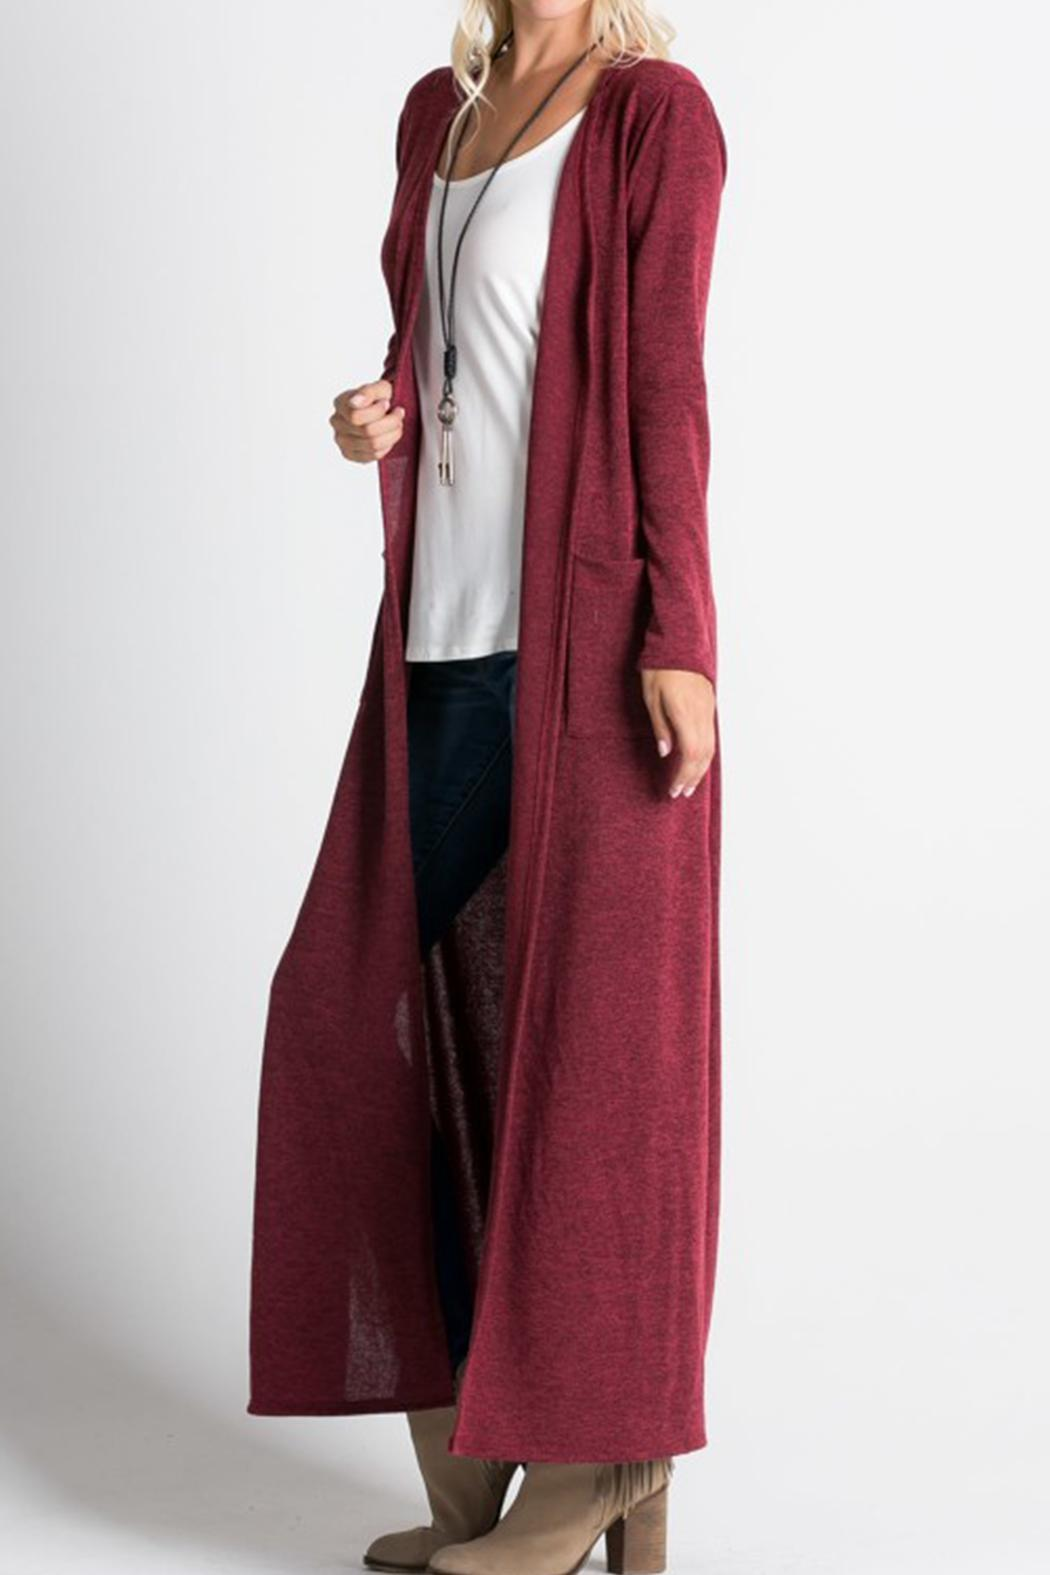 Miracle Berry Burgundy Duster from Nebraska by Dream Boutique ...